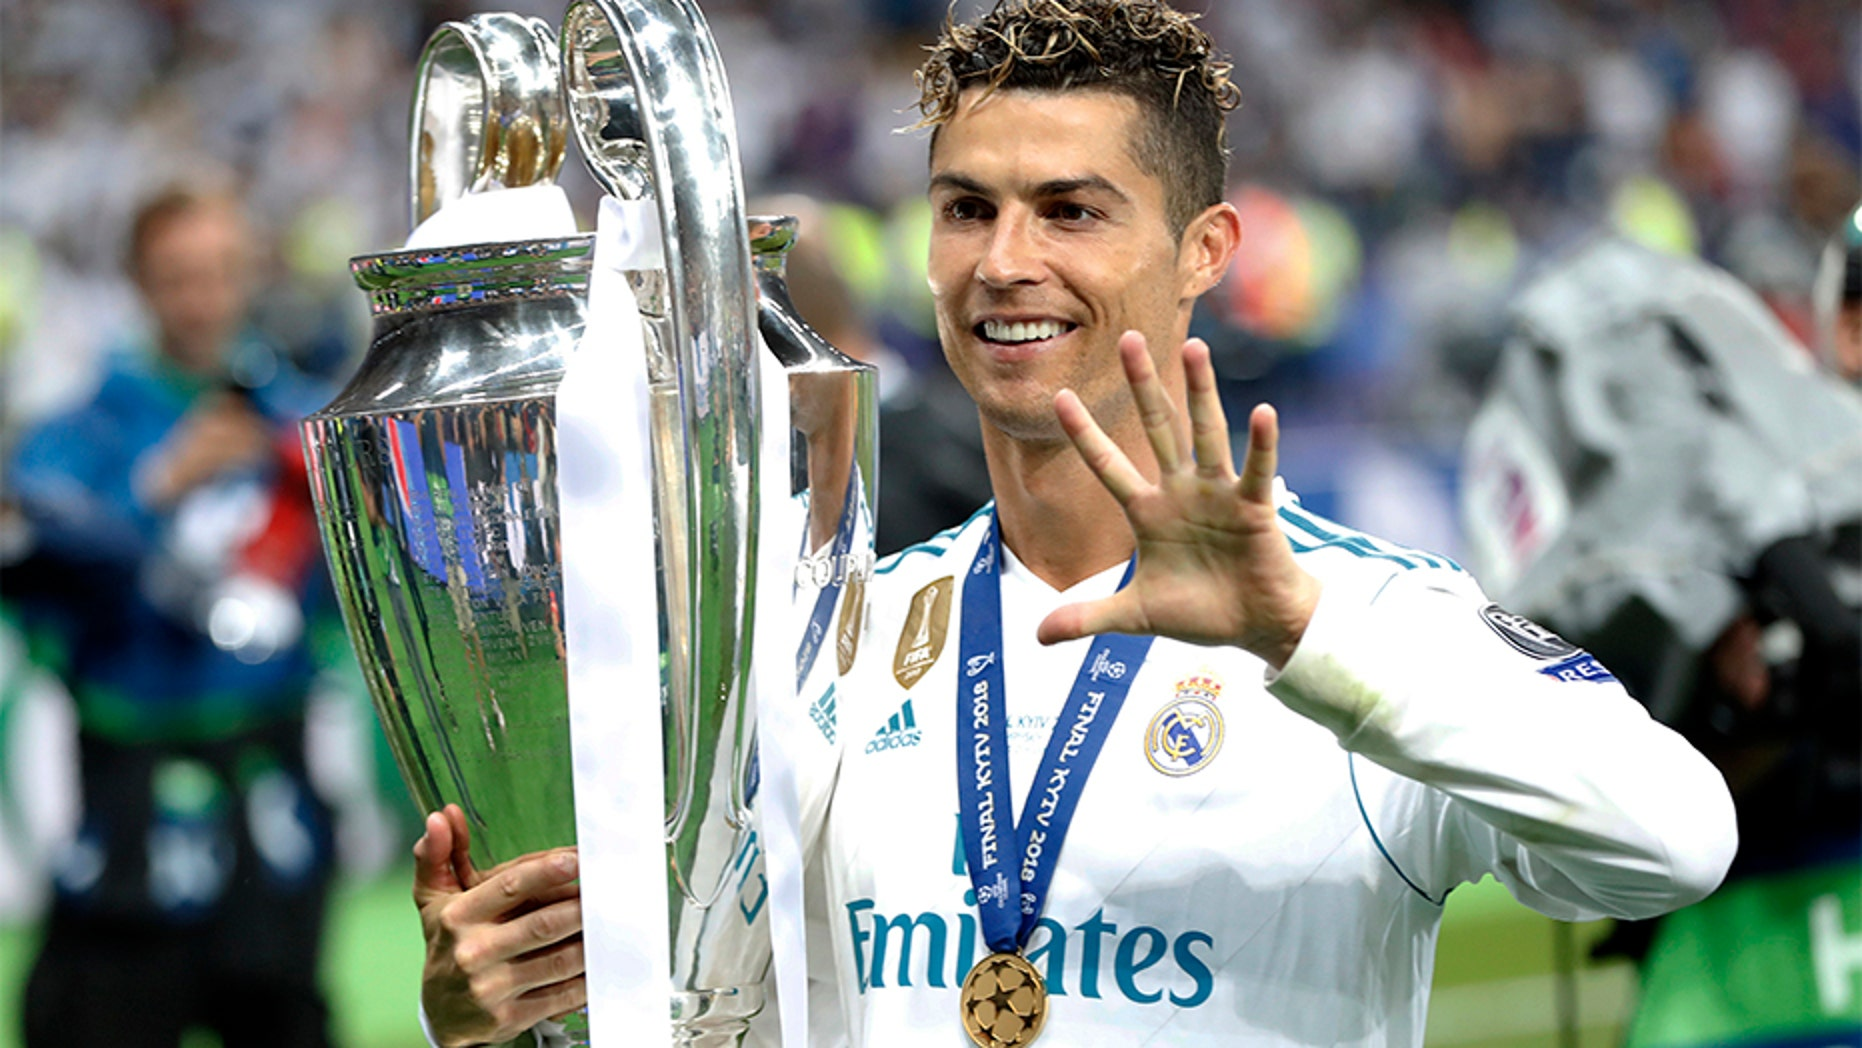 Real Madrid's Cristiano Ronaldo celebrates after winning the 2018 Champions League Final soccer match between Real Madrid and Liverpool at the Olimpiyskiy Stadium in Kiev, Ukraine.  The club announced Tuesday that he is departing Real Madrid to join Italy's Juventus.